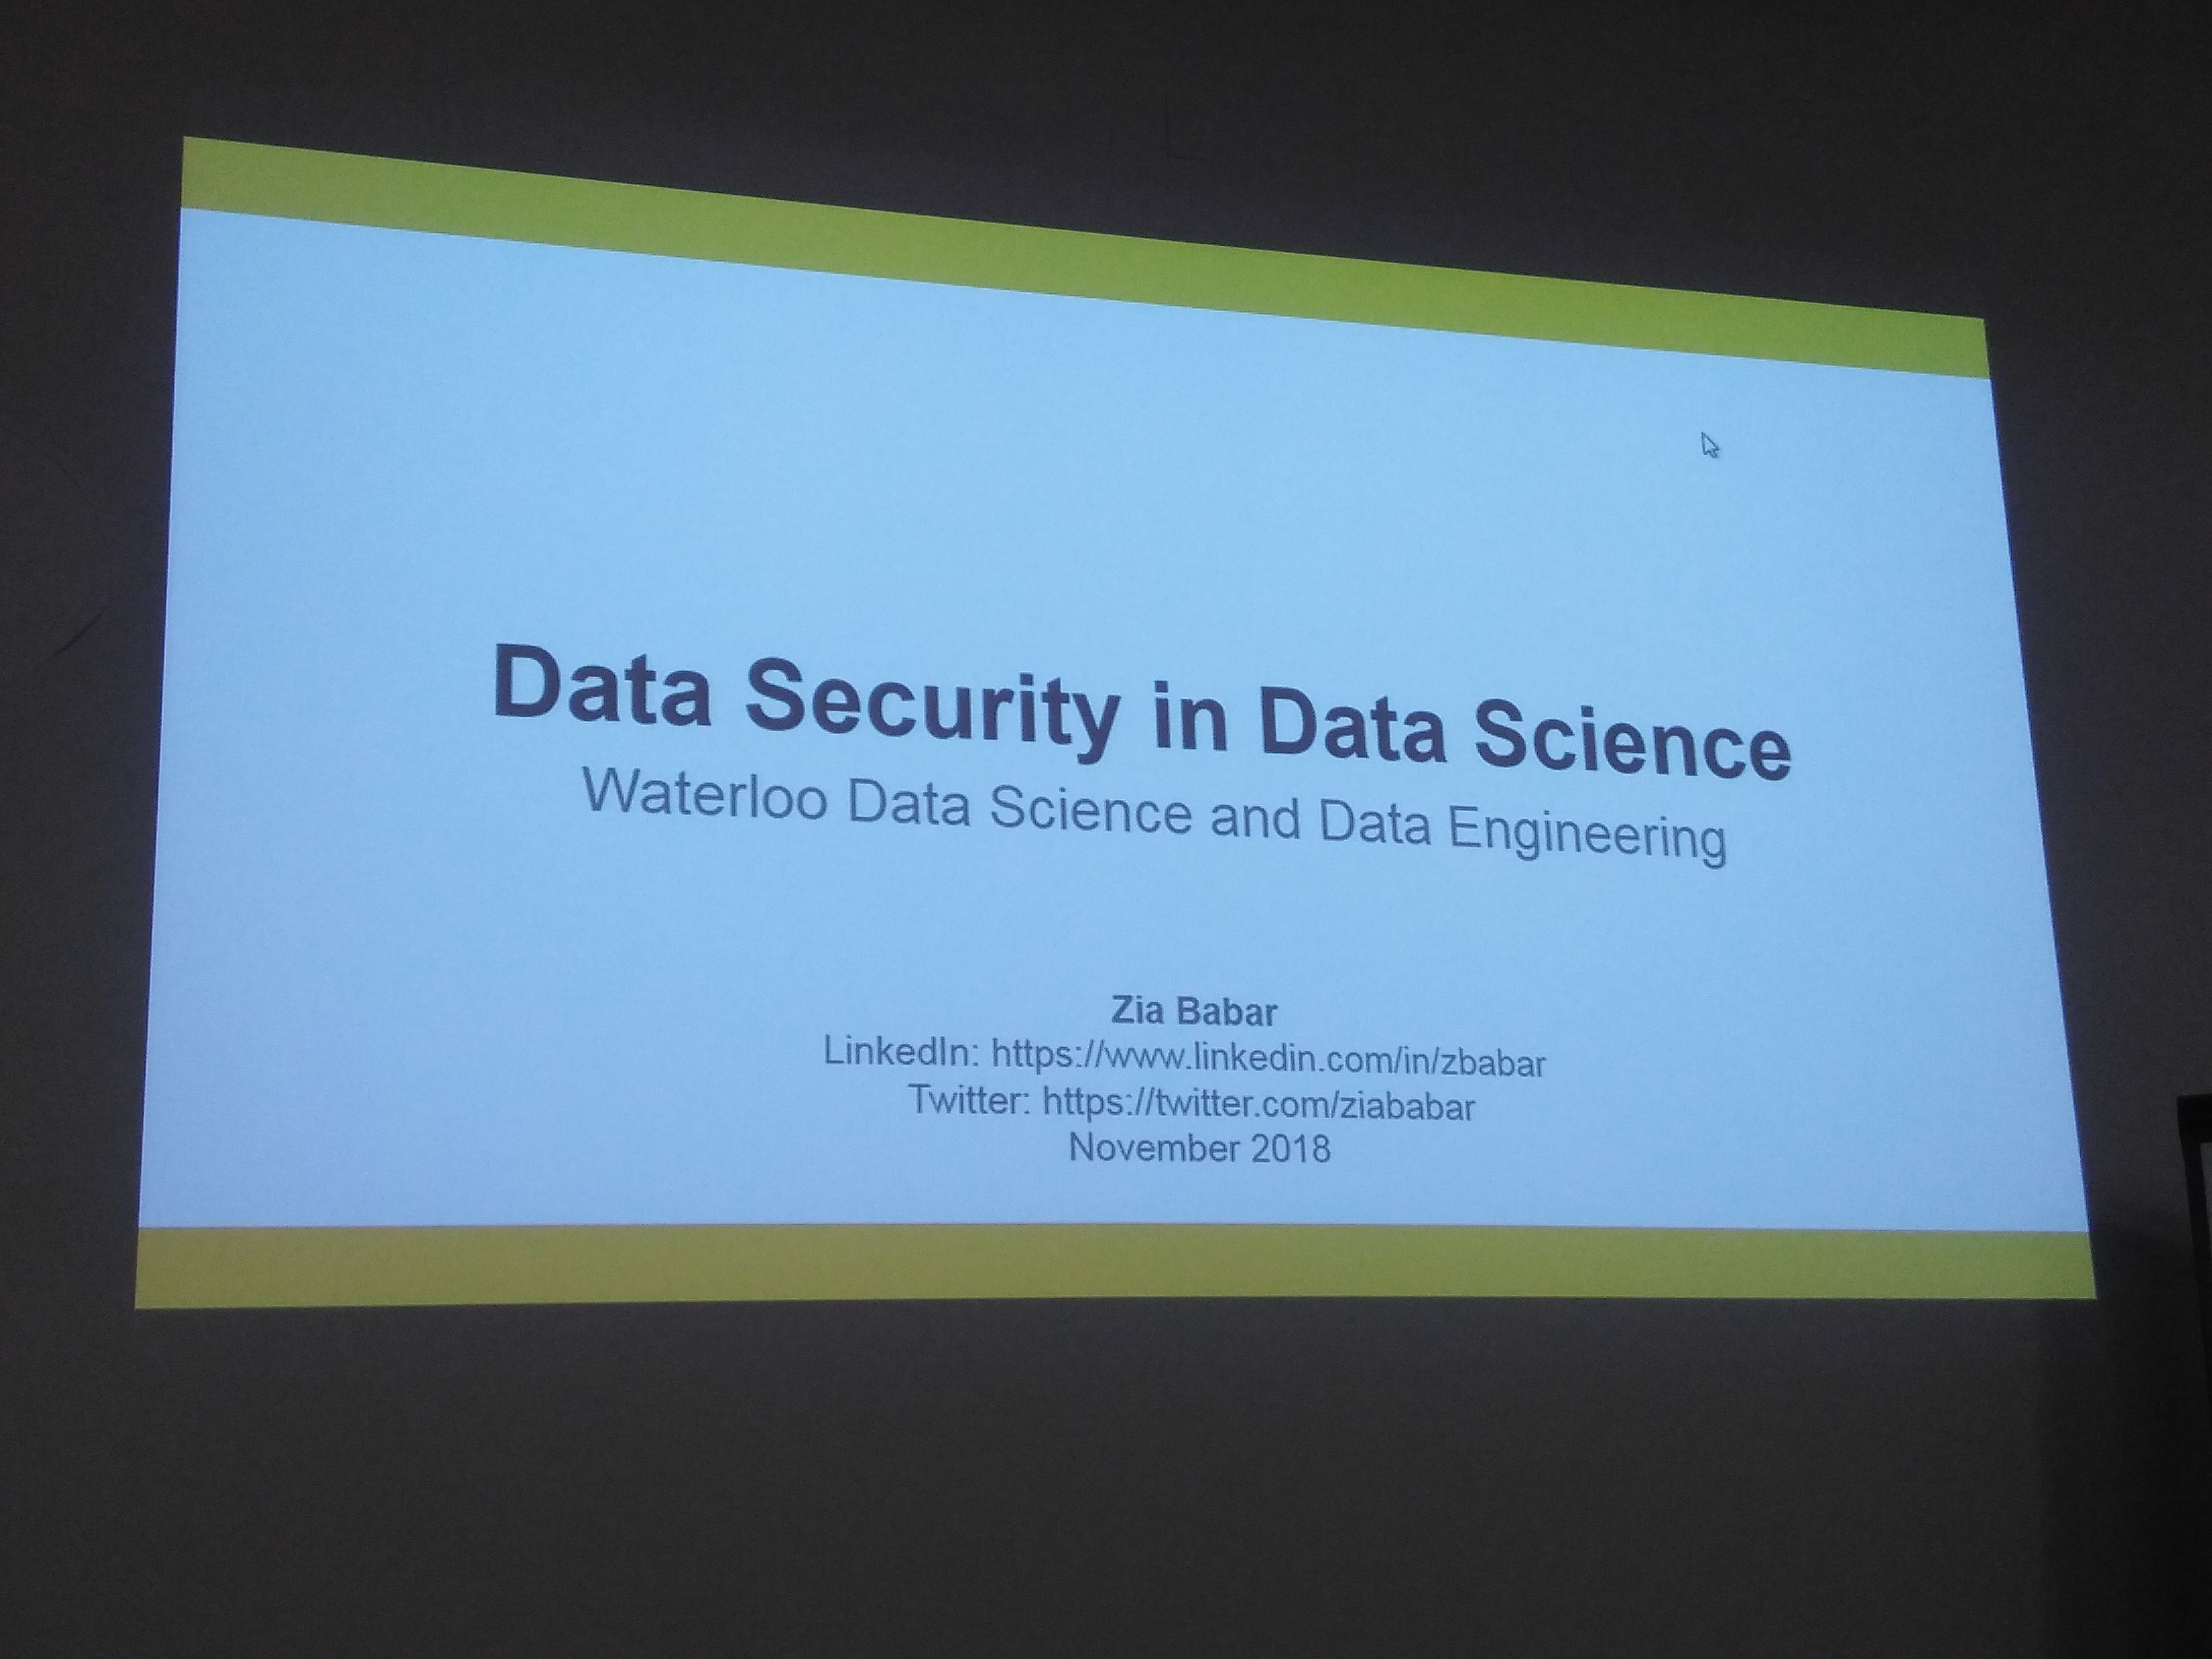 Photos Waterloo Data Science And Data Engineering